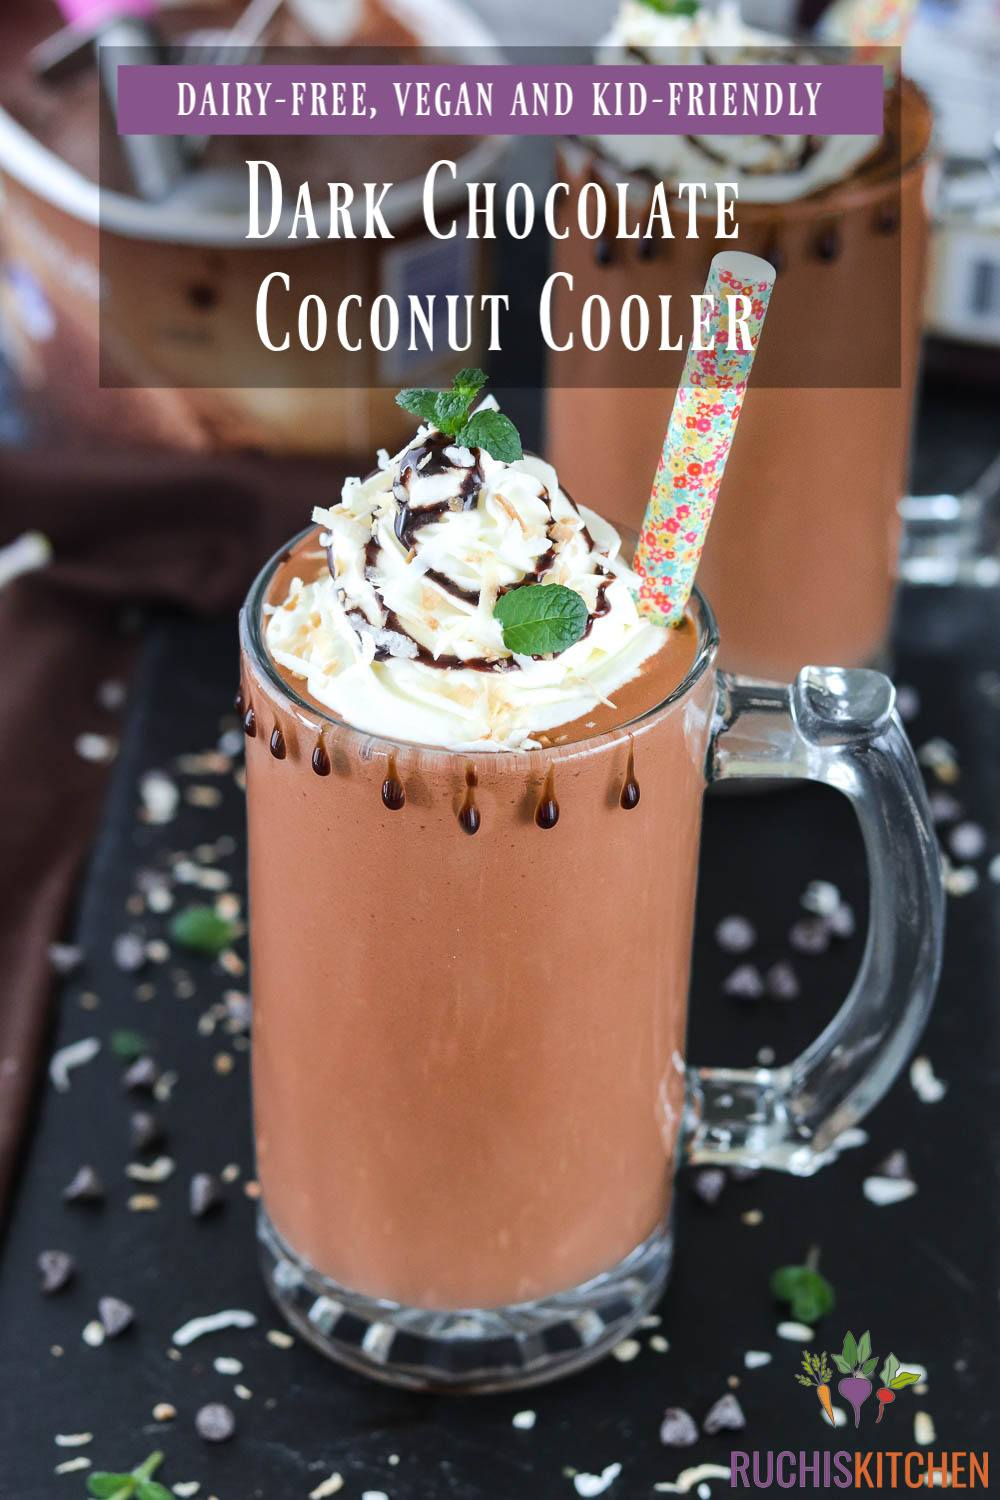 Dark Chocolate Coconut Cooler Collage - Ruchiskitchen